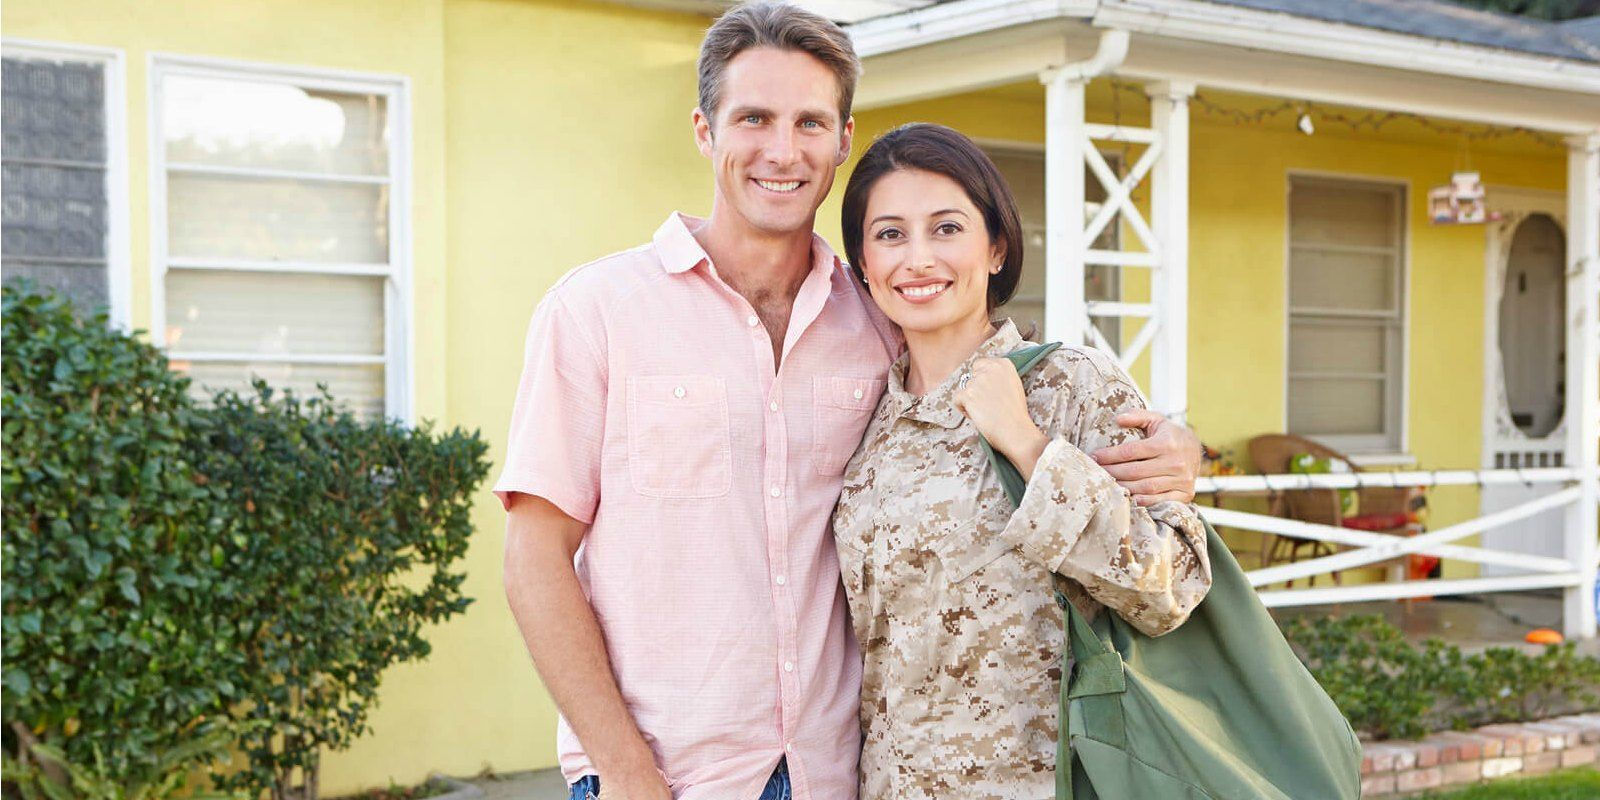 How to Find Jobs That Travel with You as a Military Spouse